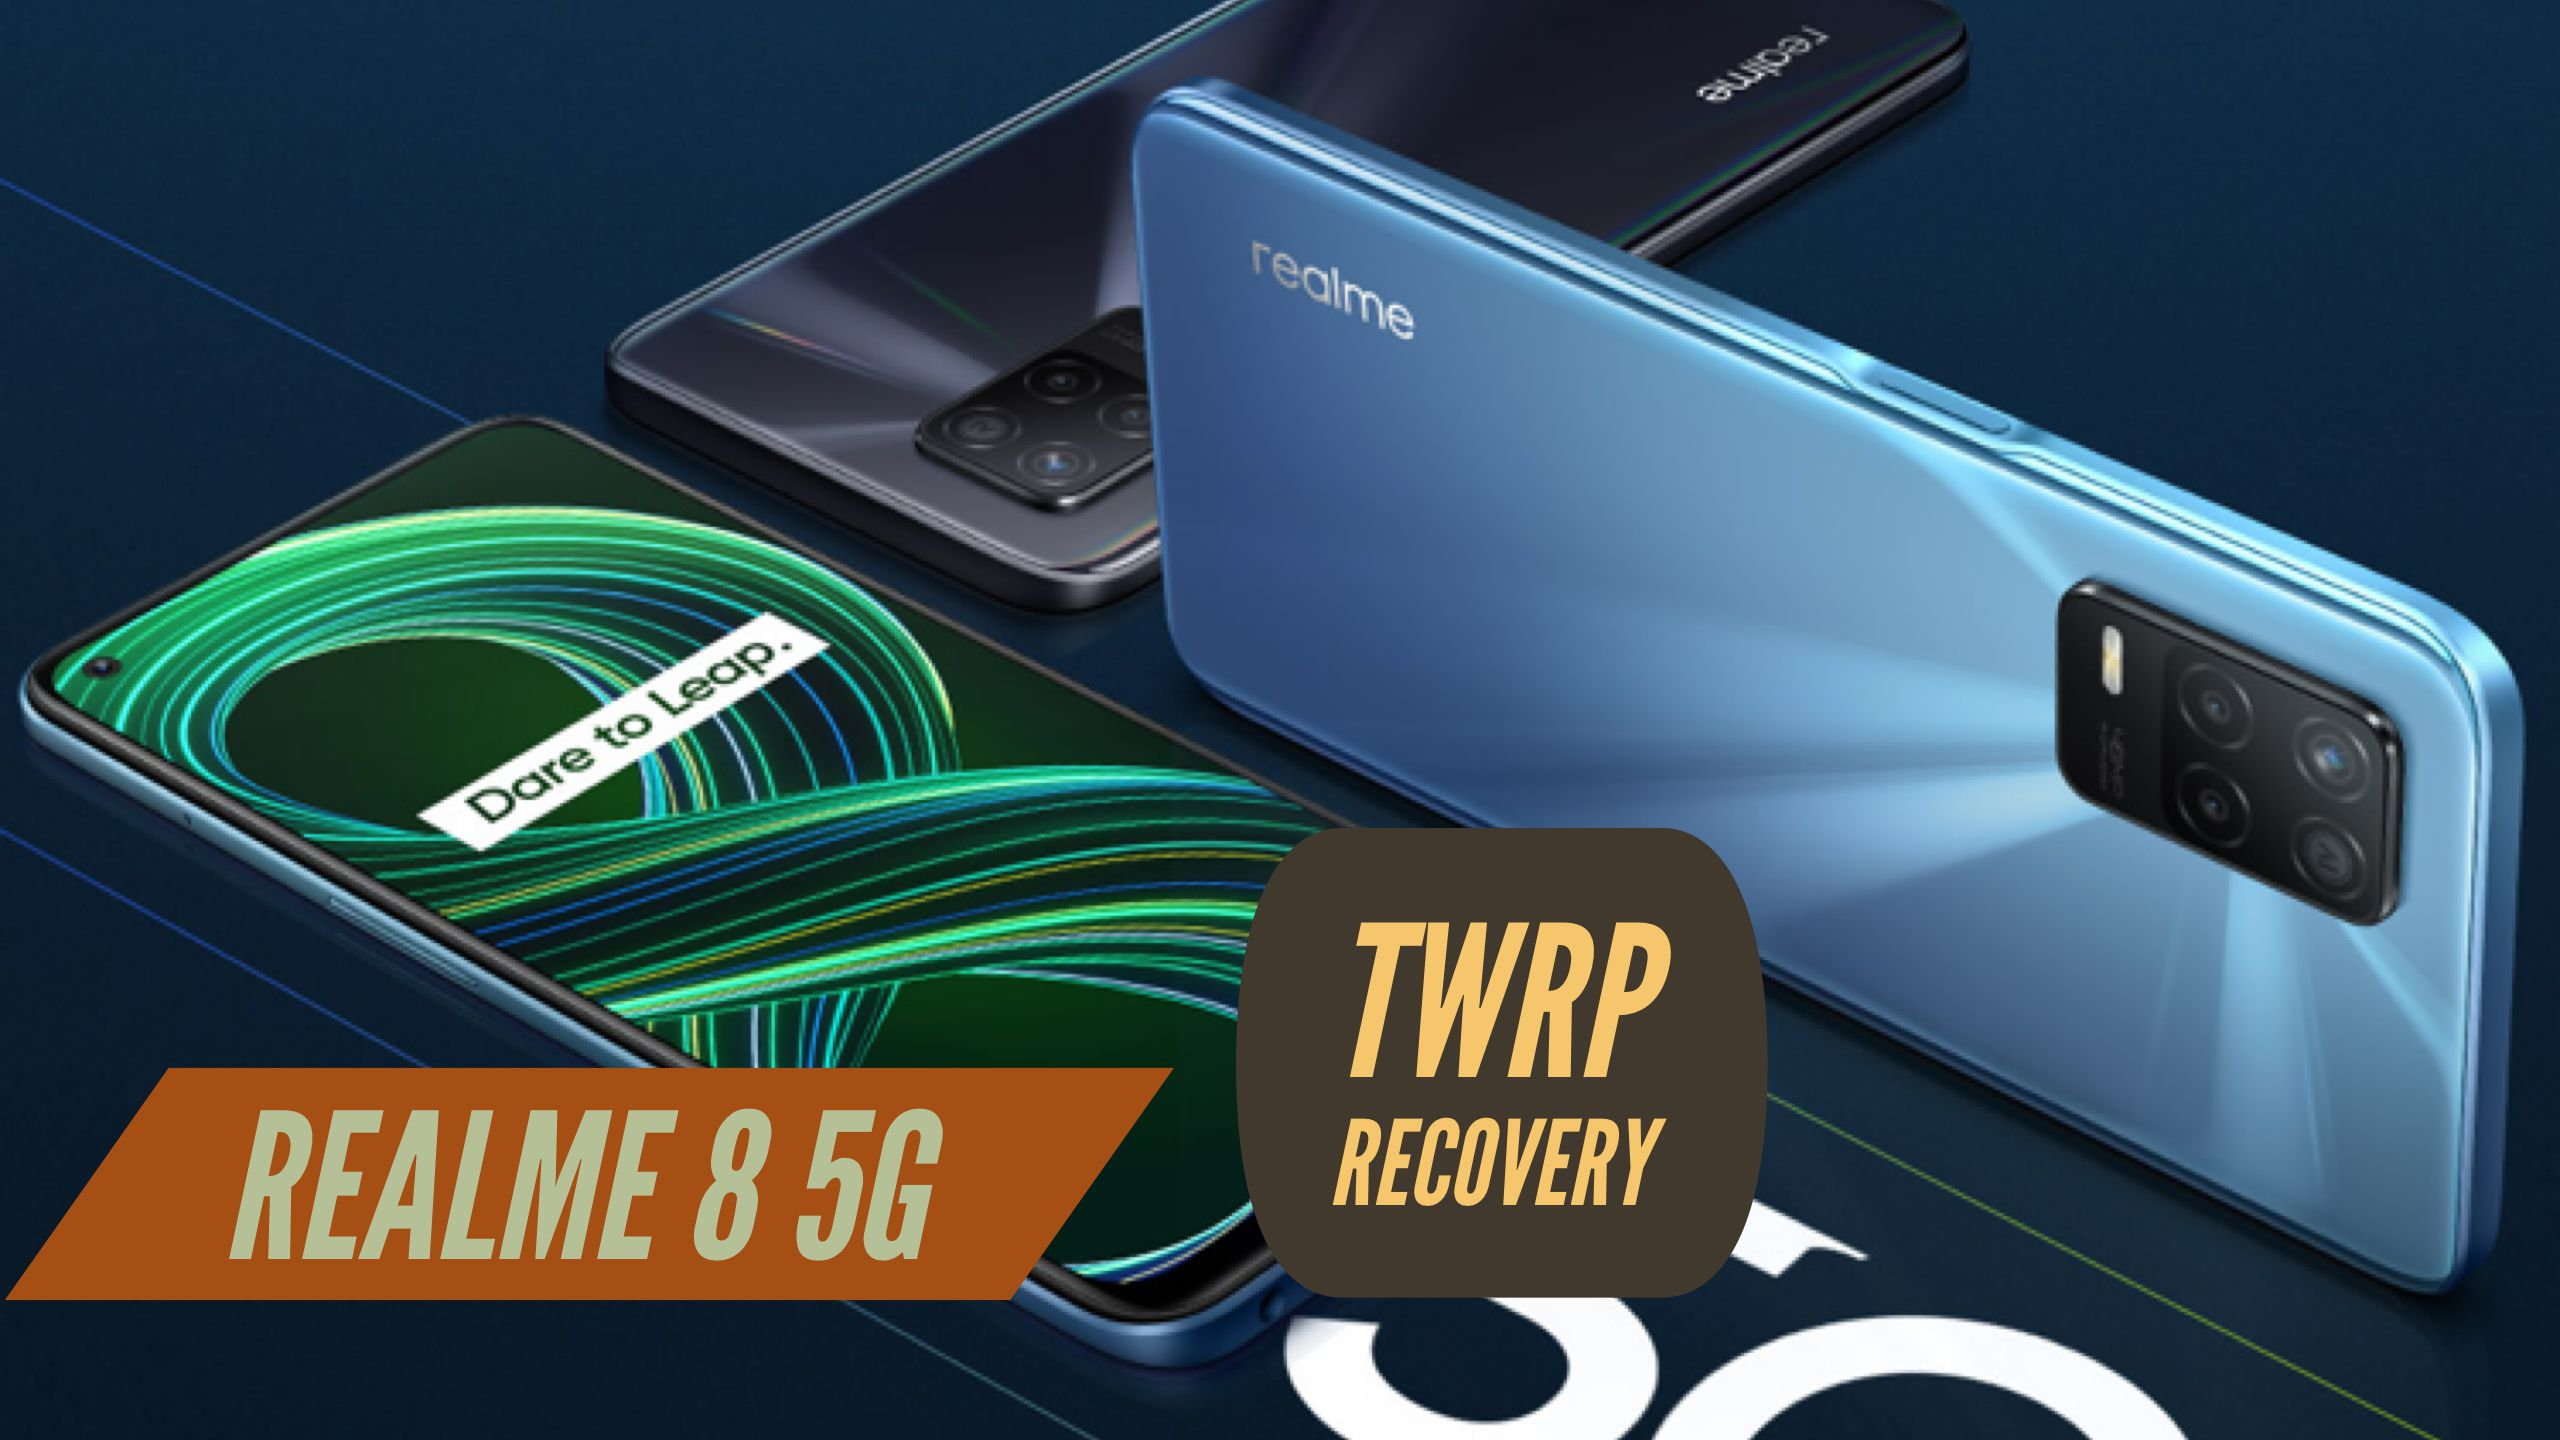 Realme 8 5G TWRP Recovery